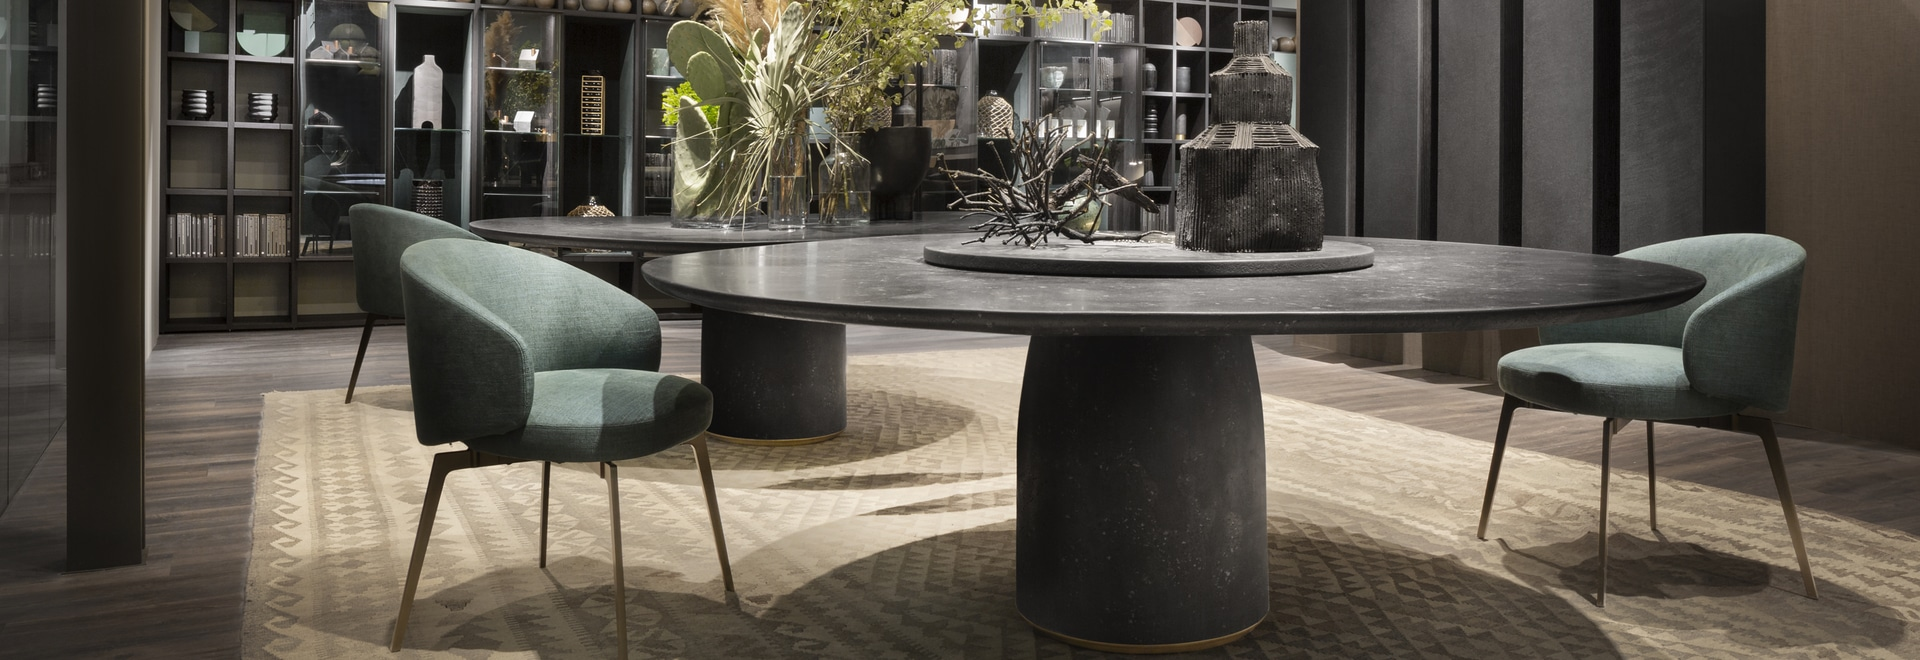 Bulè table by Chiara Andreatti; Bea dining chair by Roberto Lazzeroni; T030 and Selecta modular system